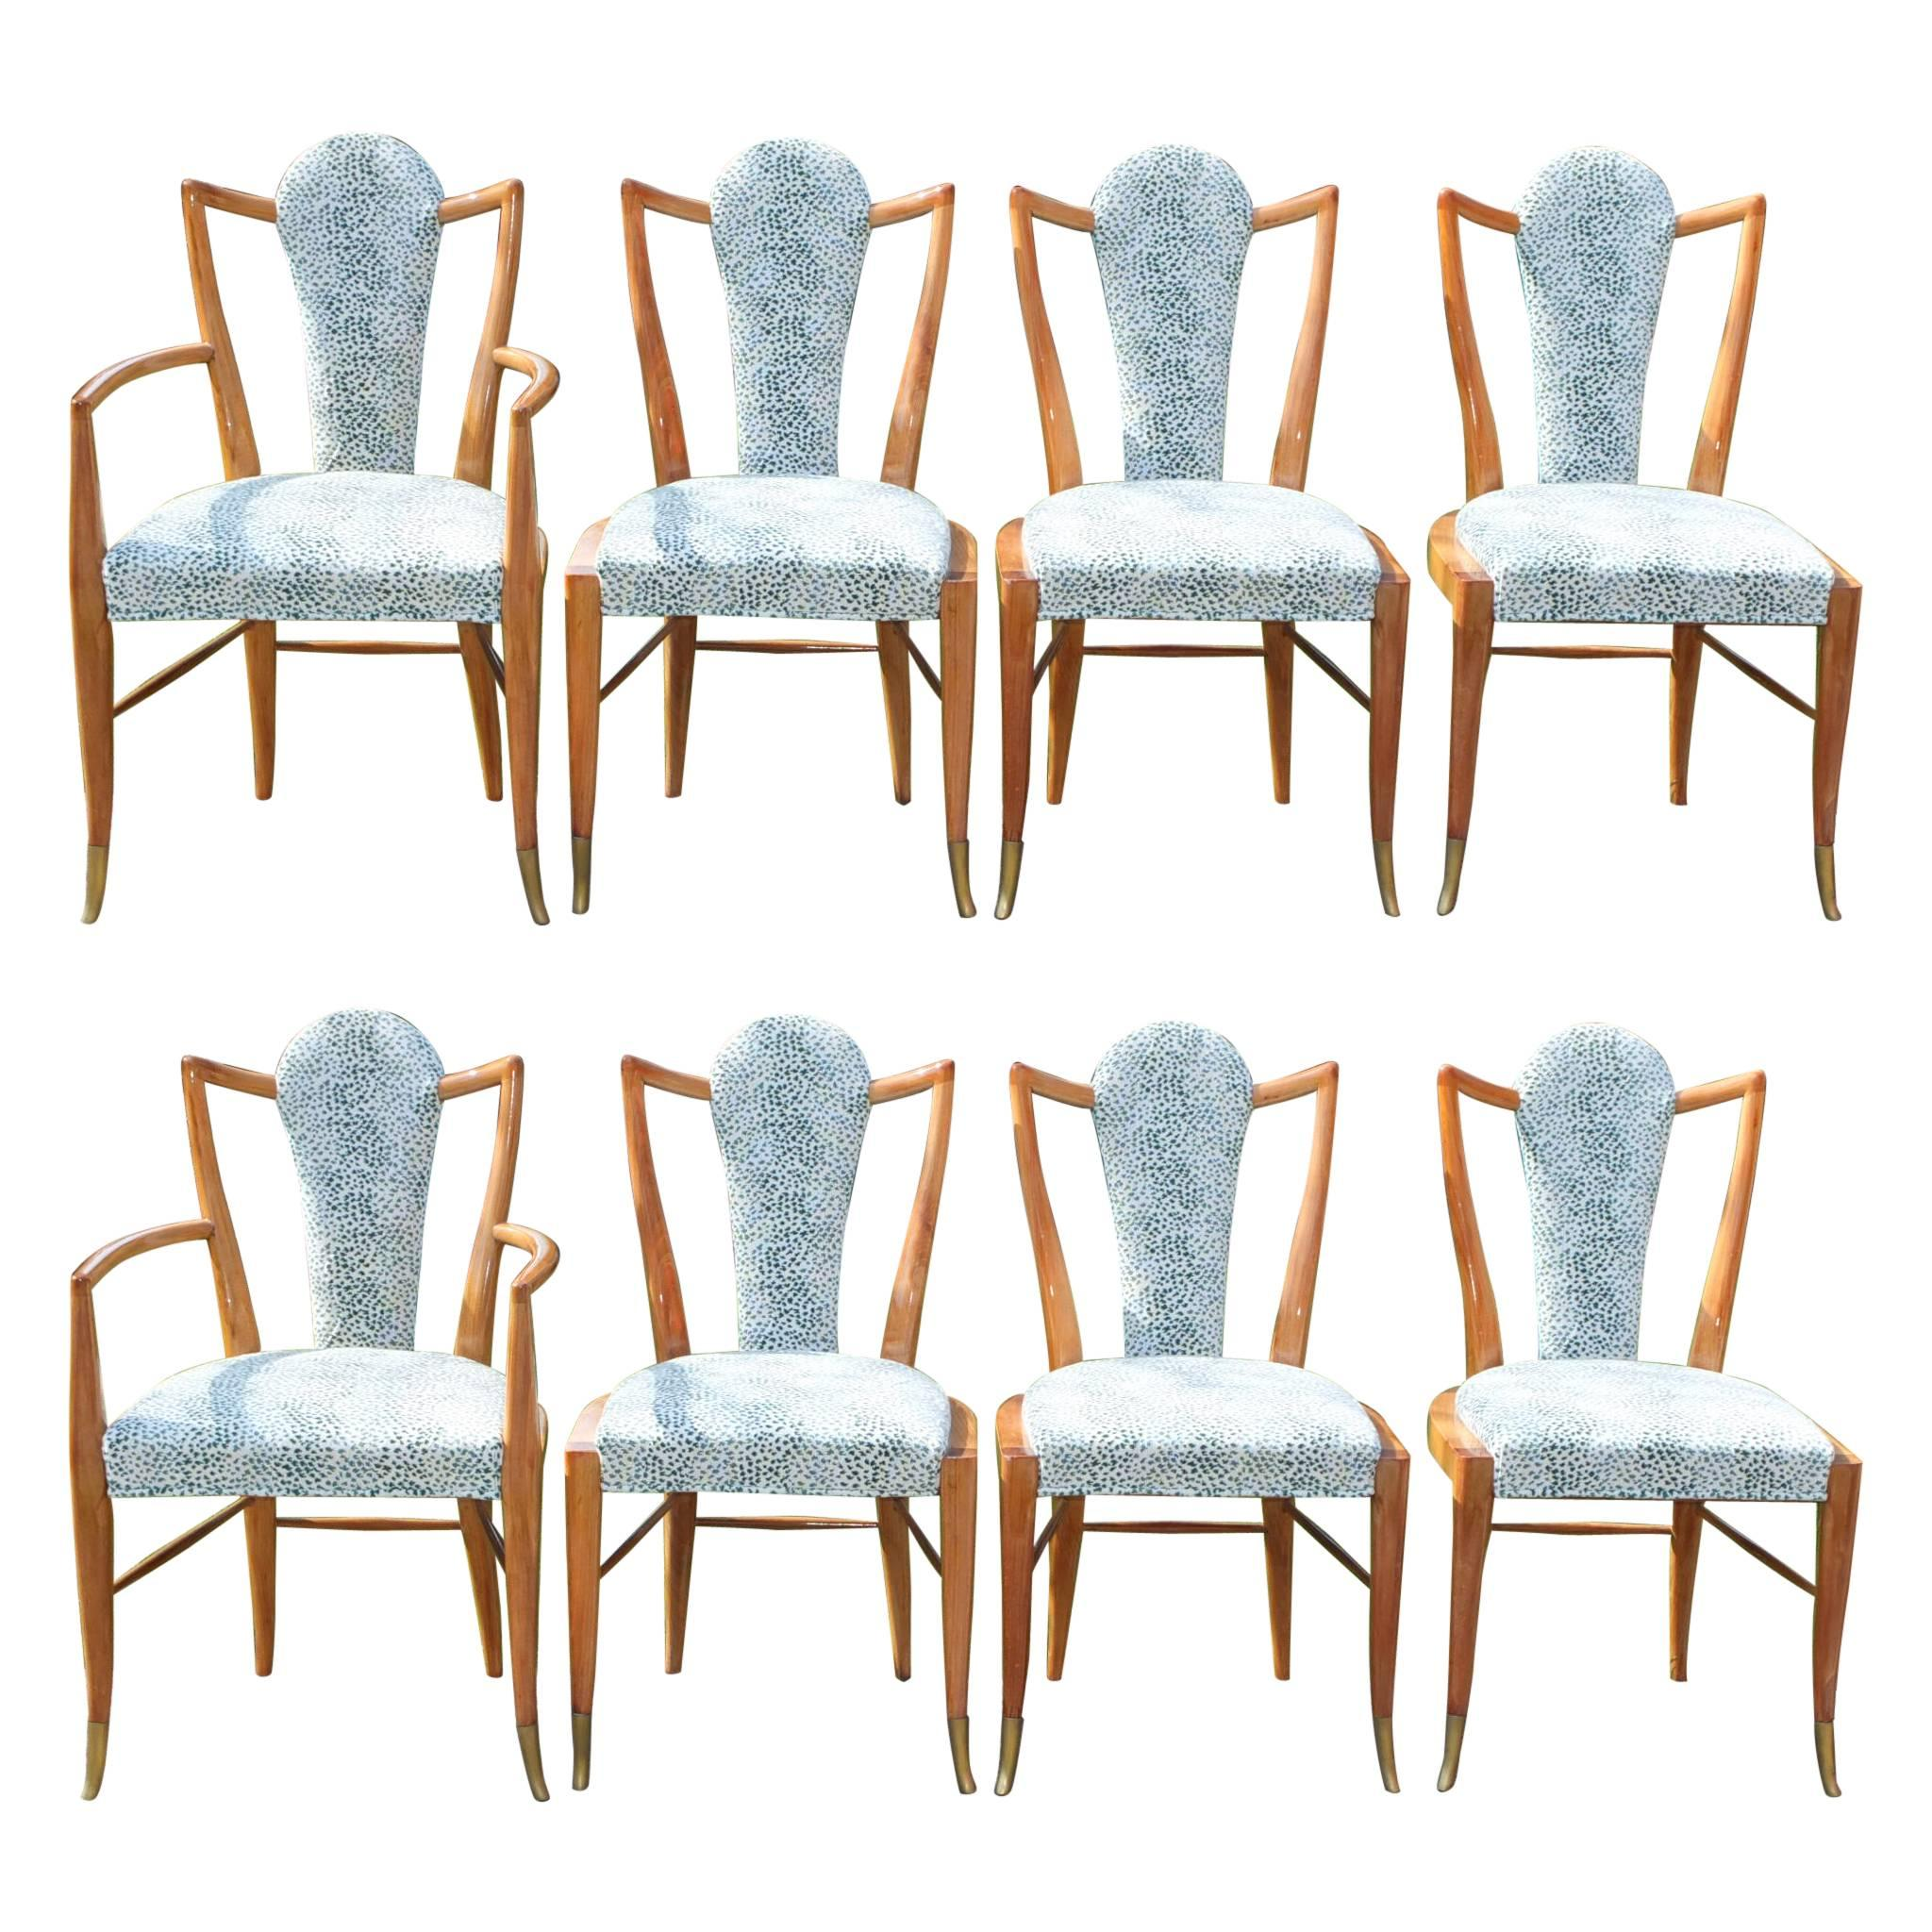 Set of Eight 1950s Dining Chairs by Adolfo Genovese